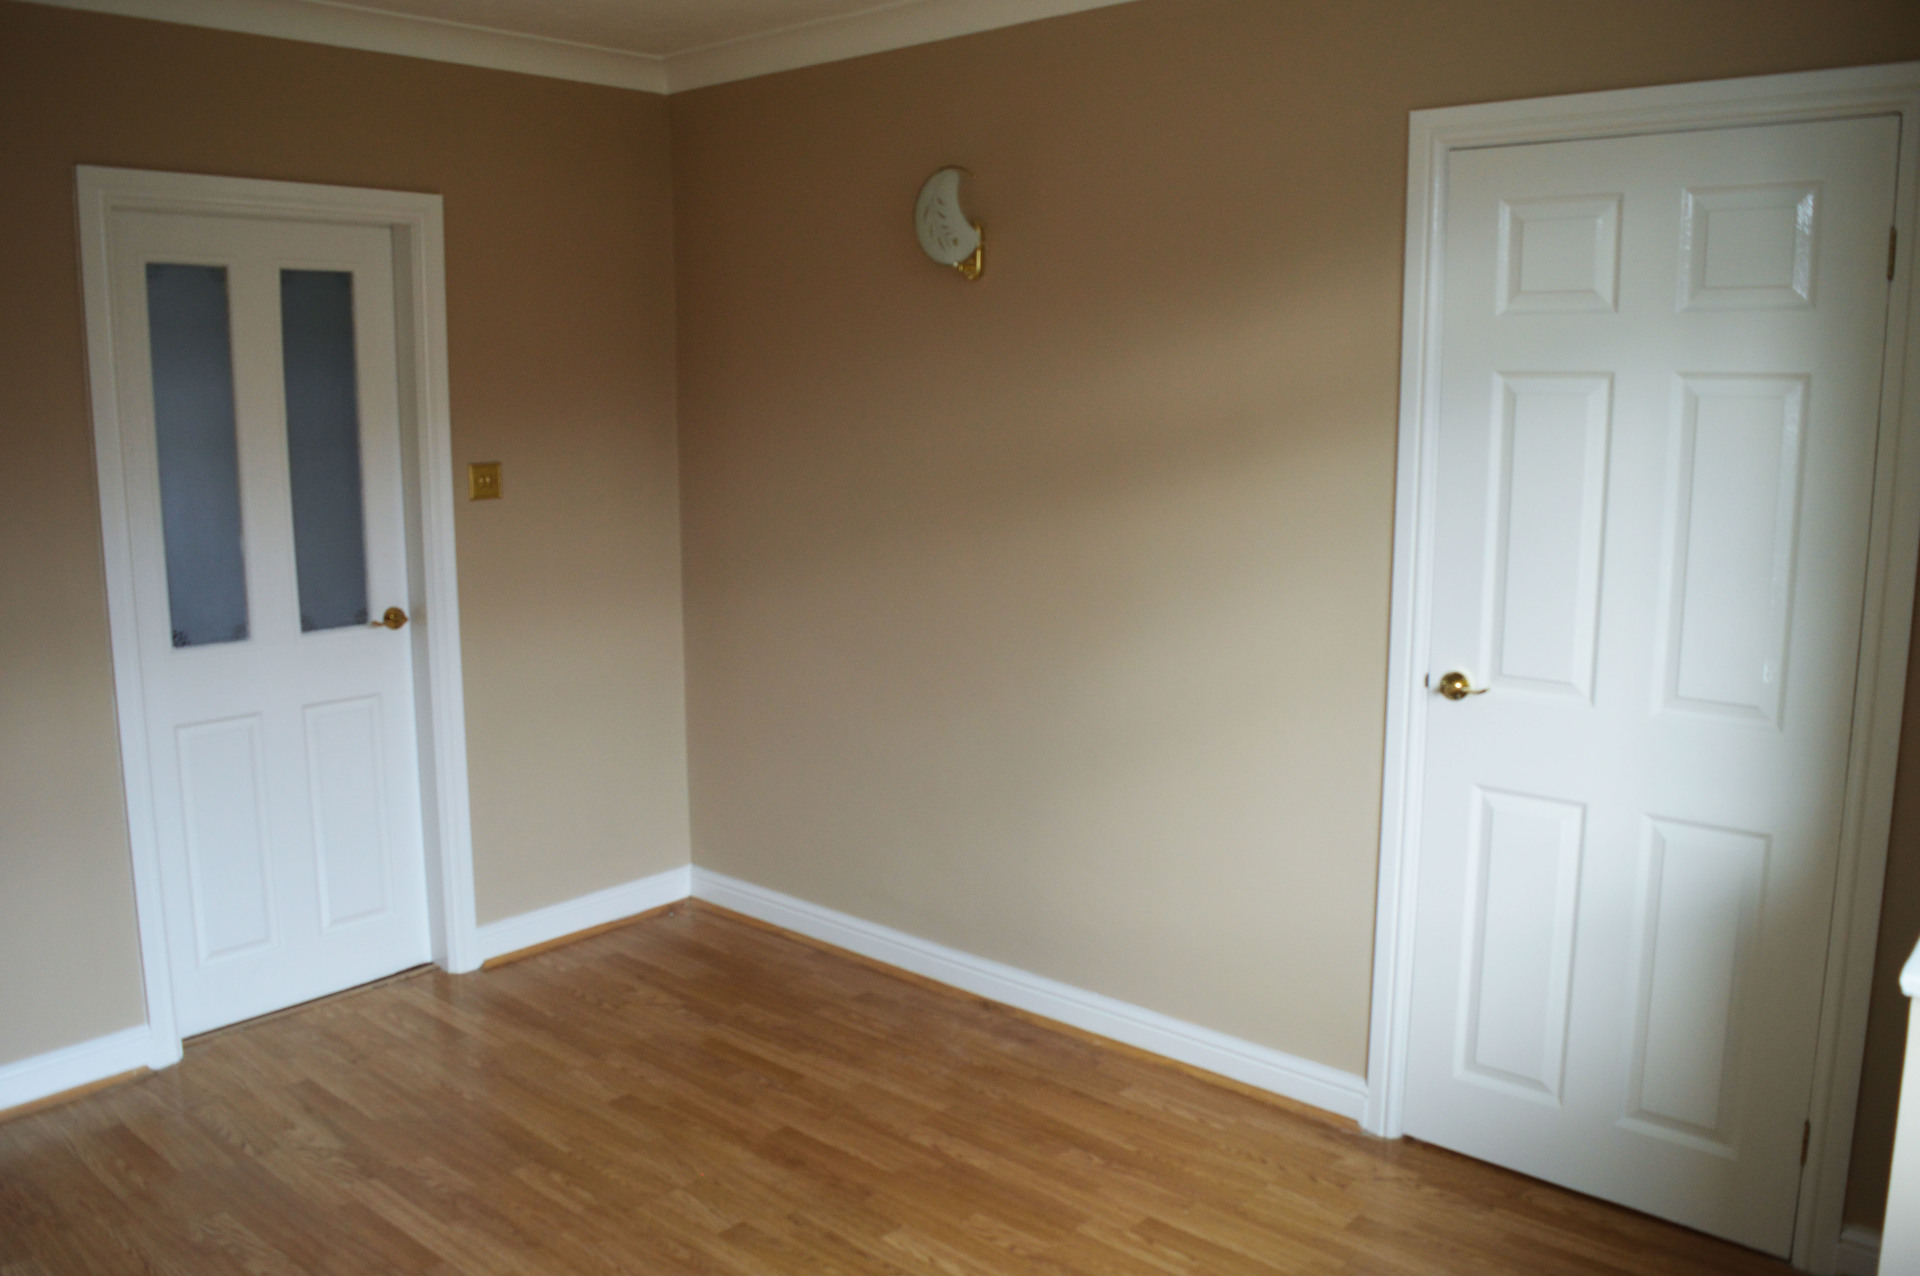 interior painting and decorating finished job